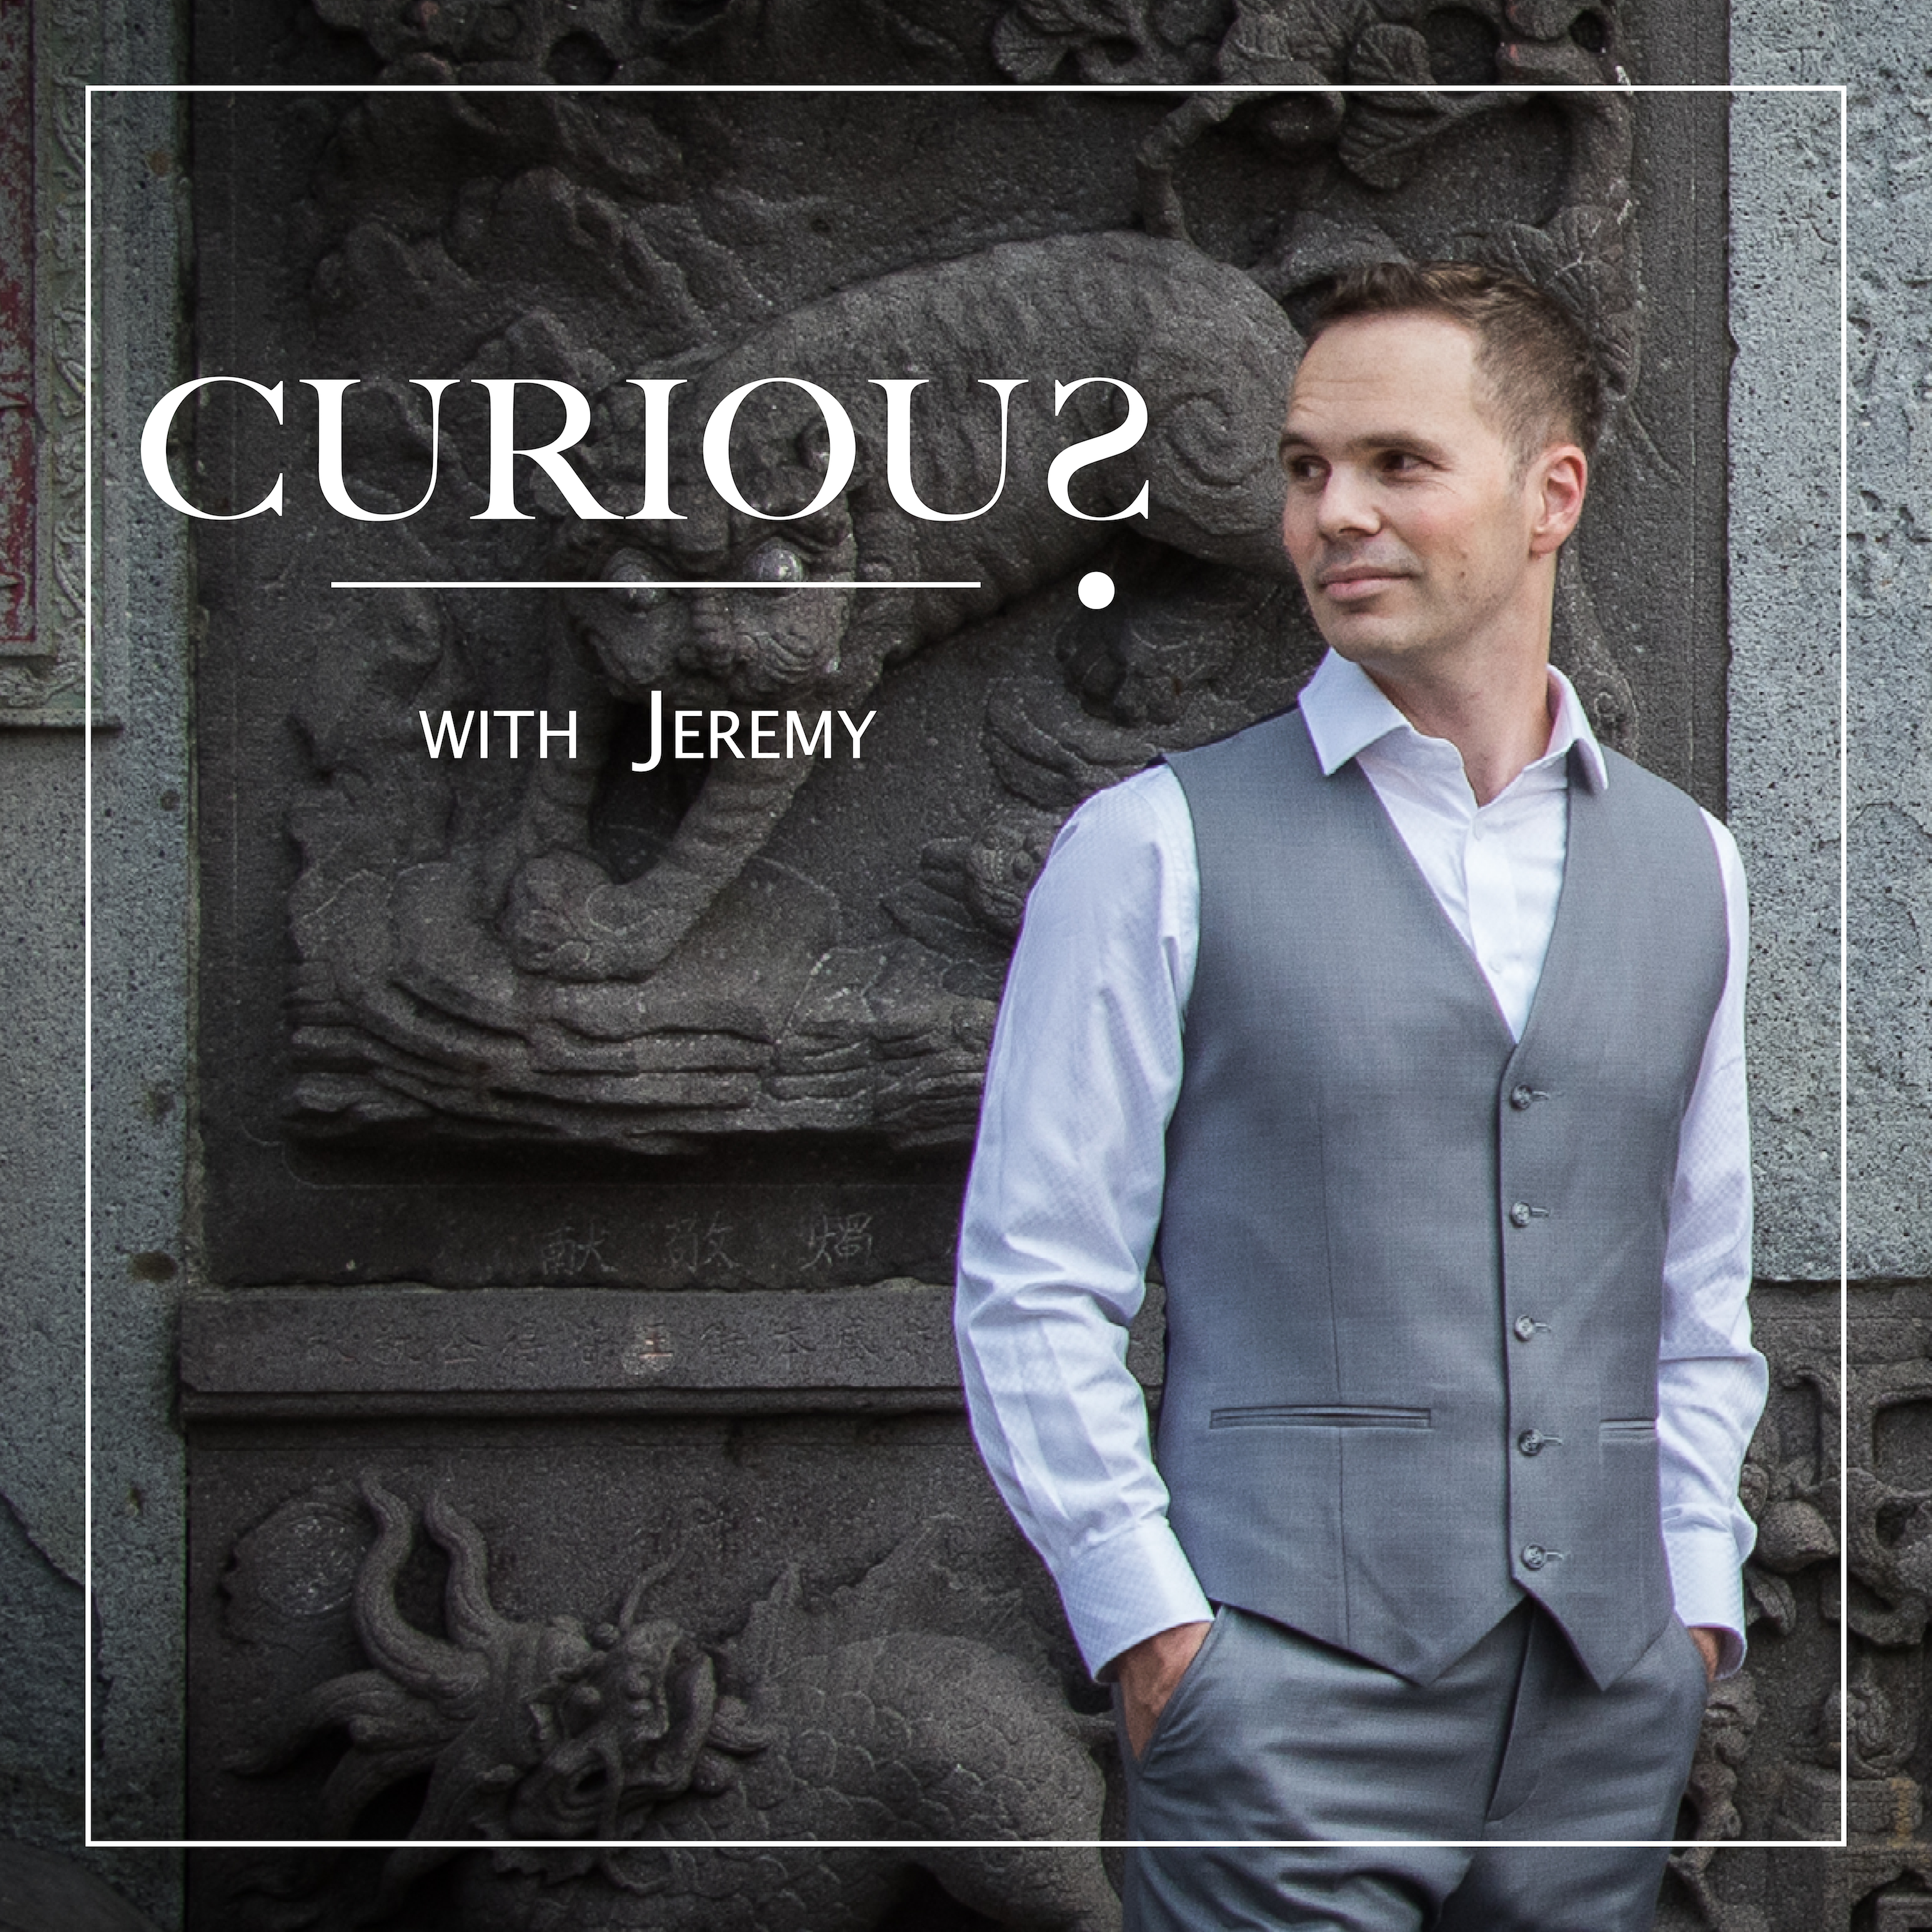 Curious with Jeremy